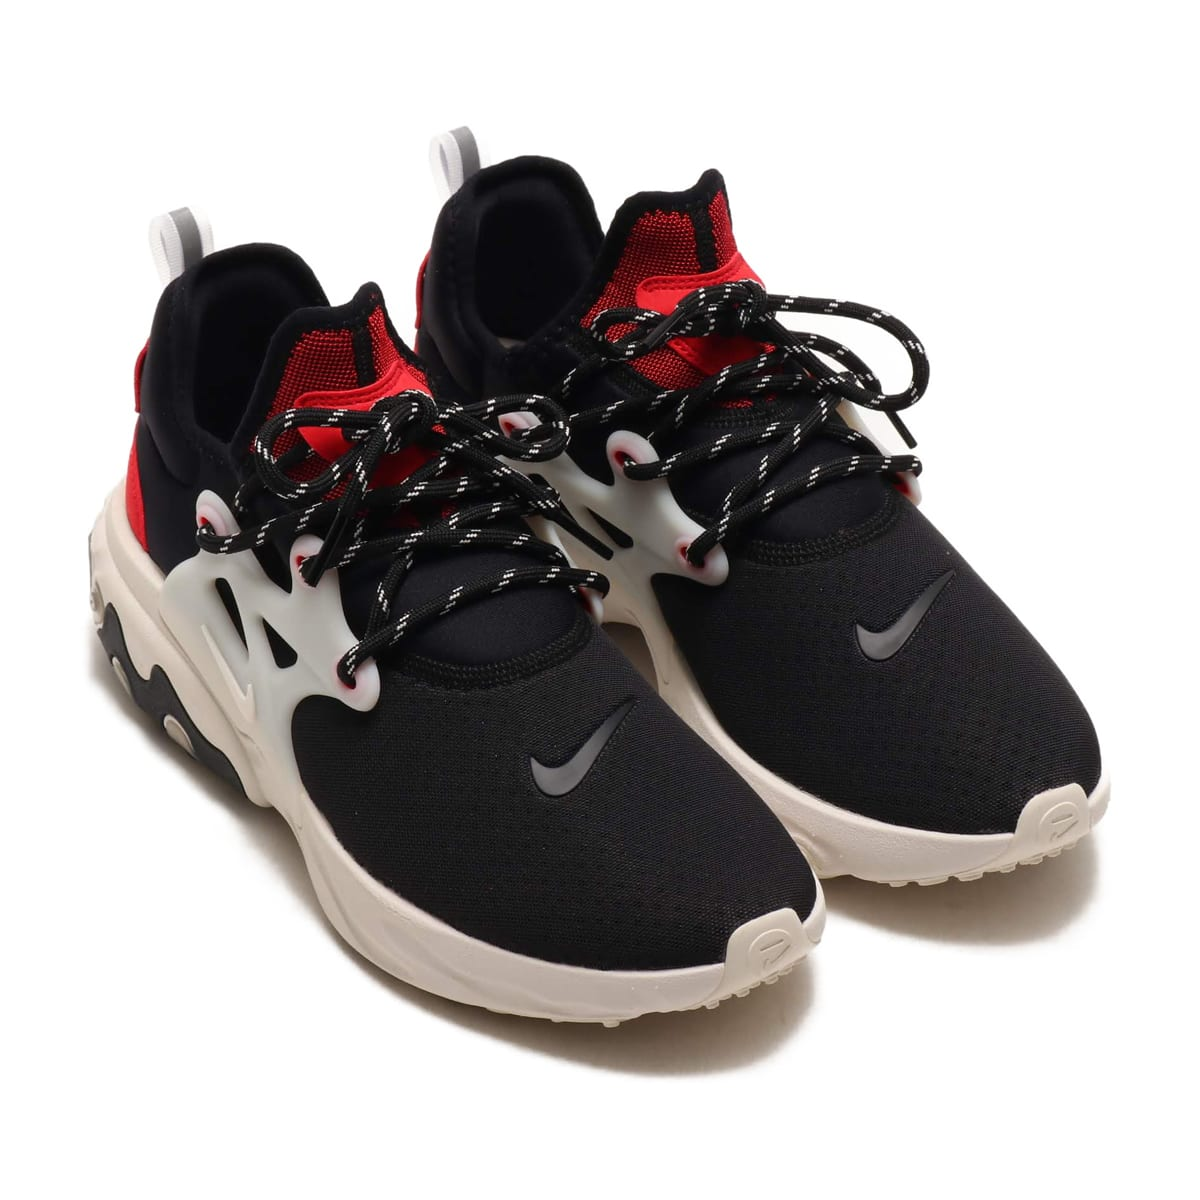 NIKE REACT PRESTO BLACK/PHANTOM-UNIV RED 19SU-S_photo_large